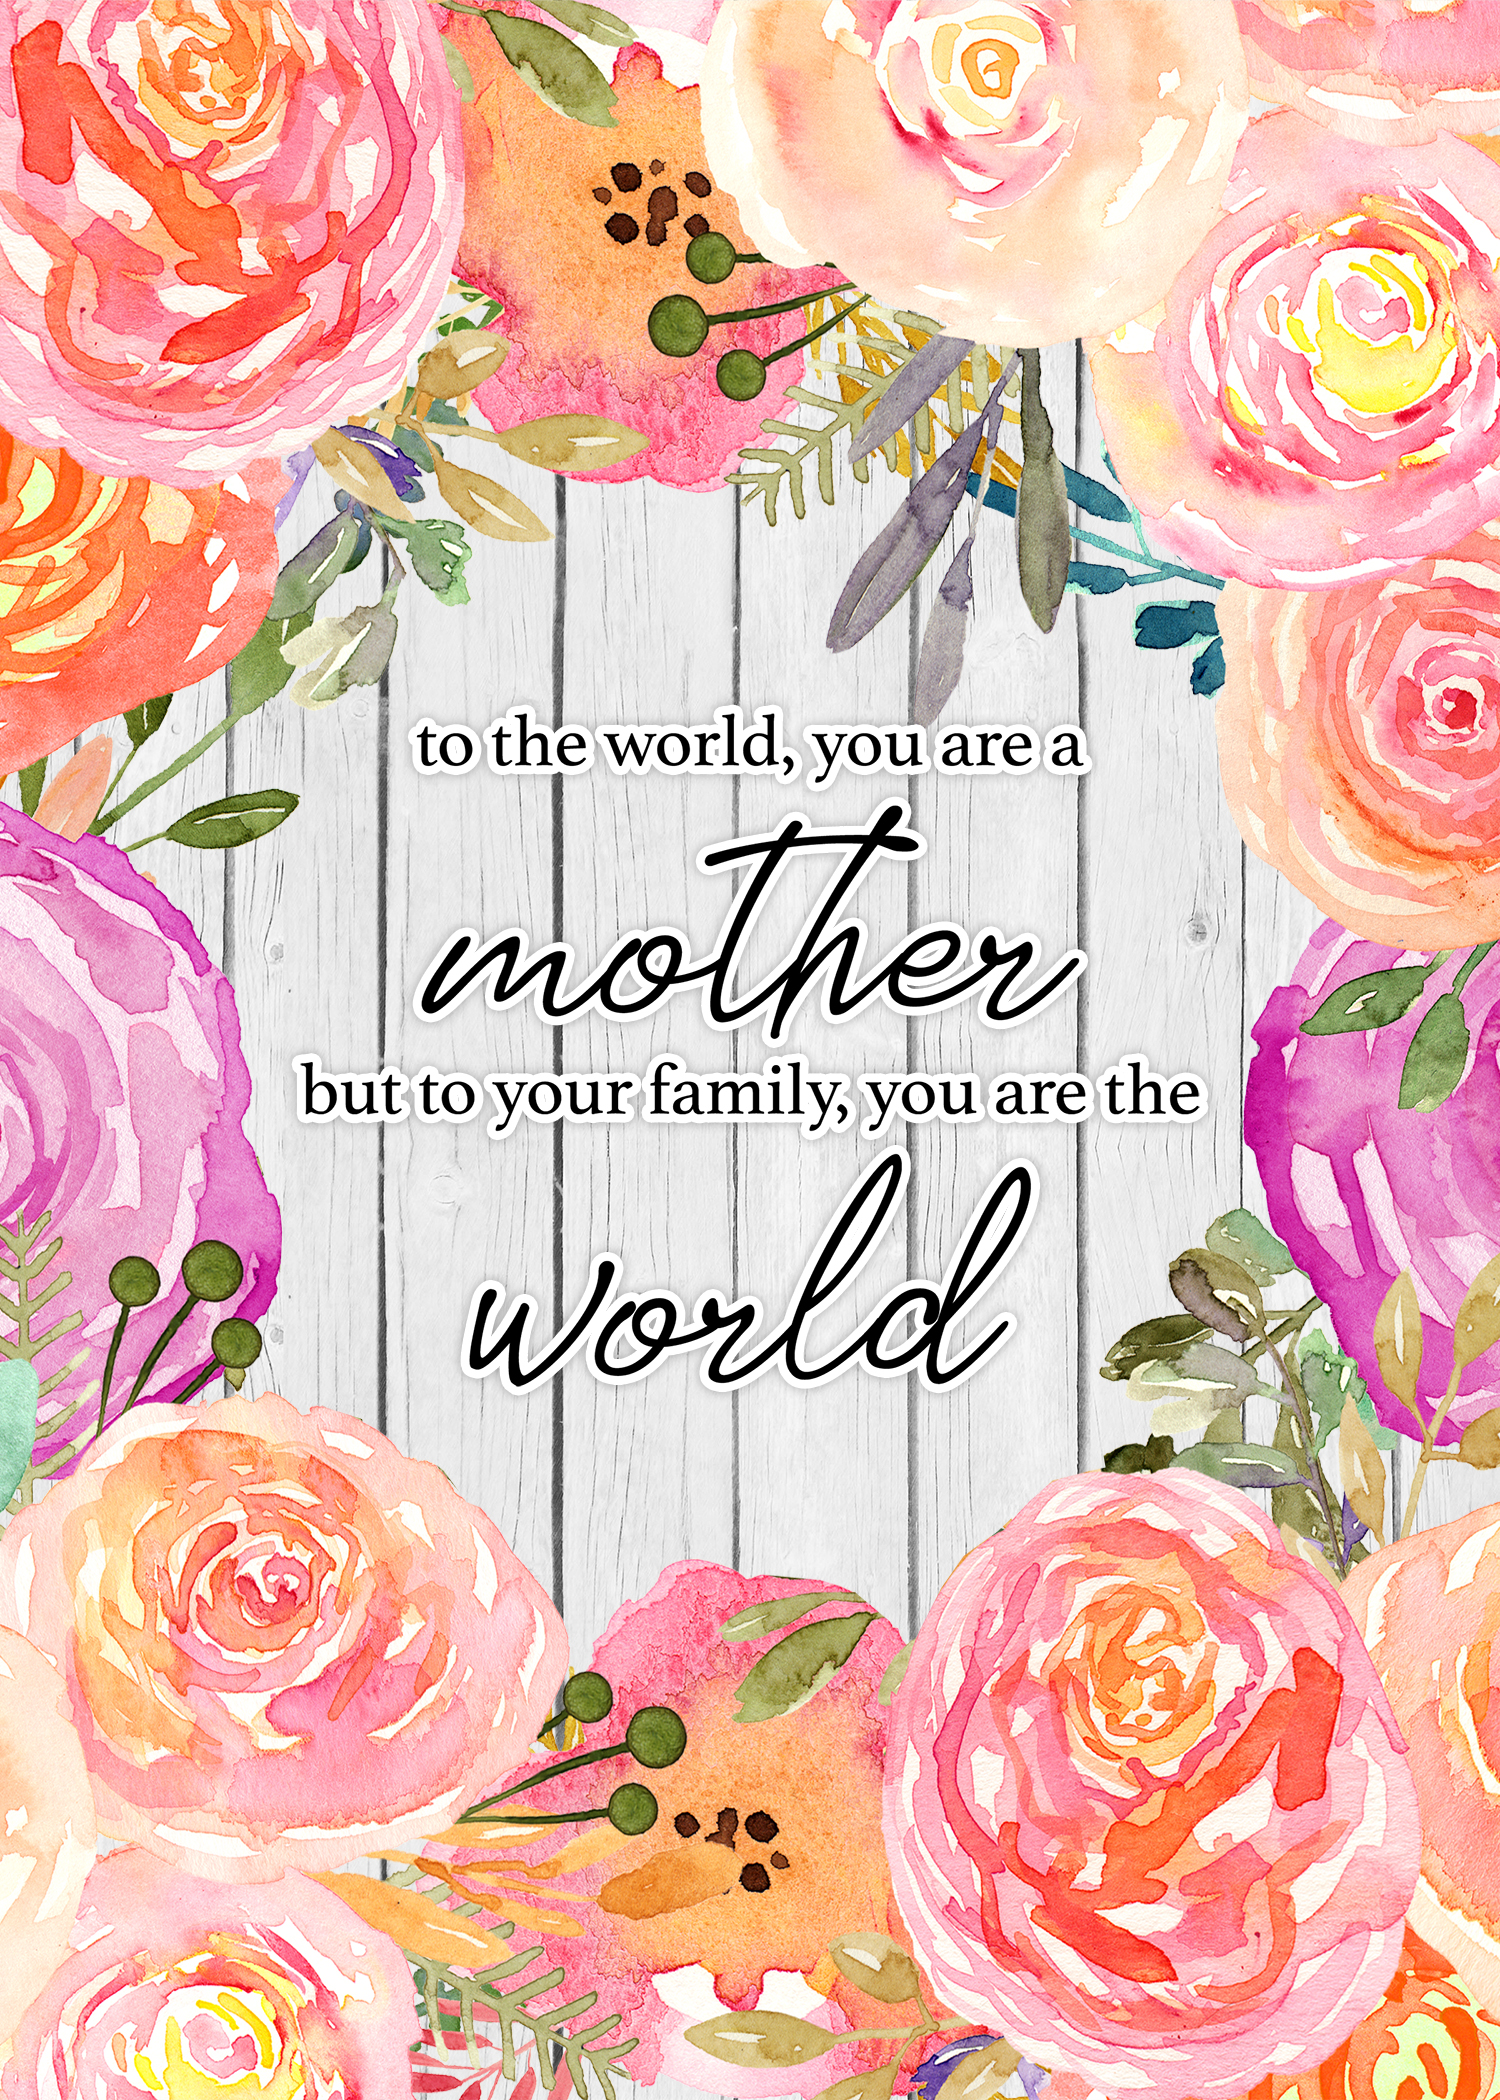 image regarding Printable Mothers Day Quotes known as Fantastic Totally free Printable Moms Working day Inspirational Estimate